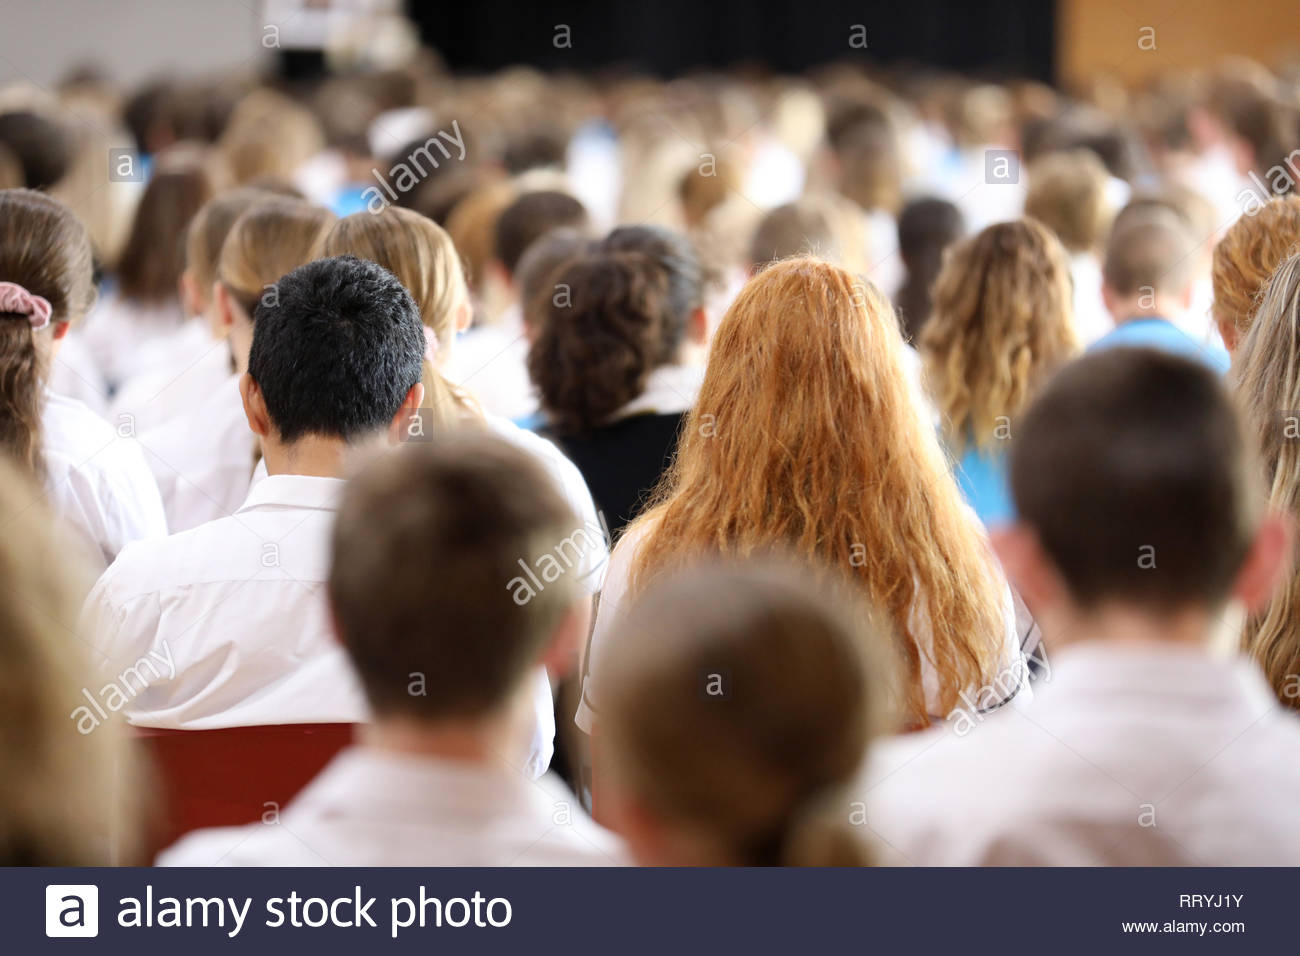 High School students sitting at assembly listening. Large group of school kids facing away anonymous. Education concept. Secondary student heads. - Stock Image